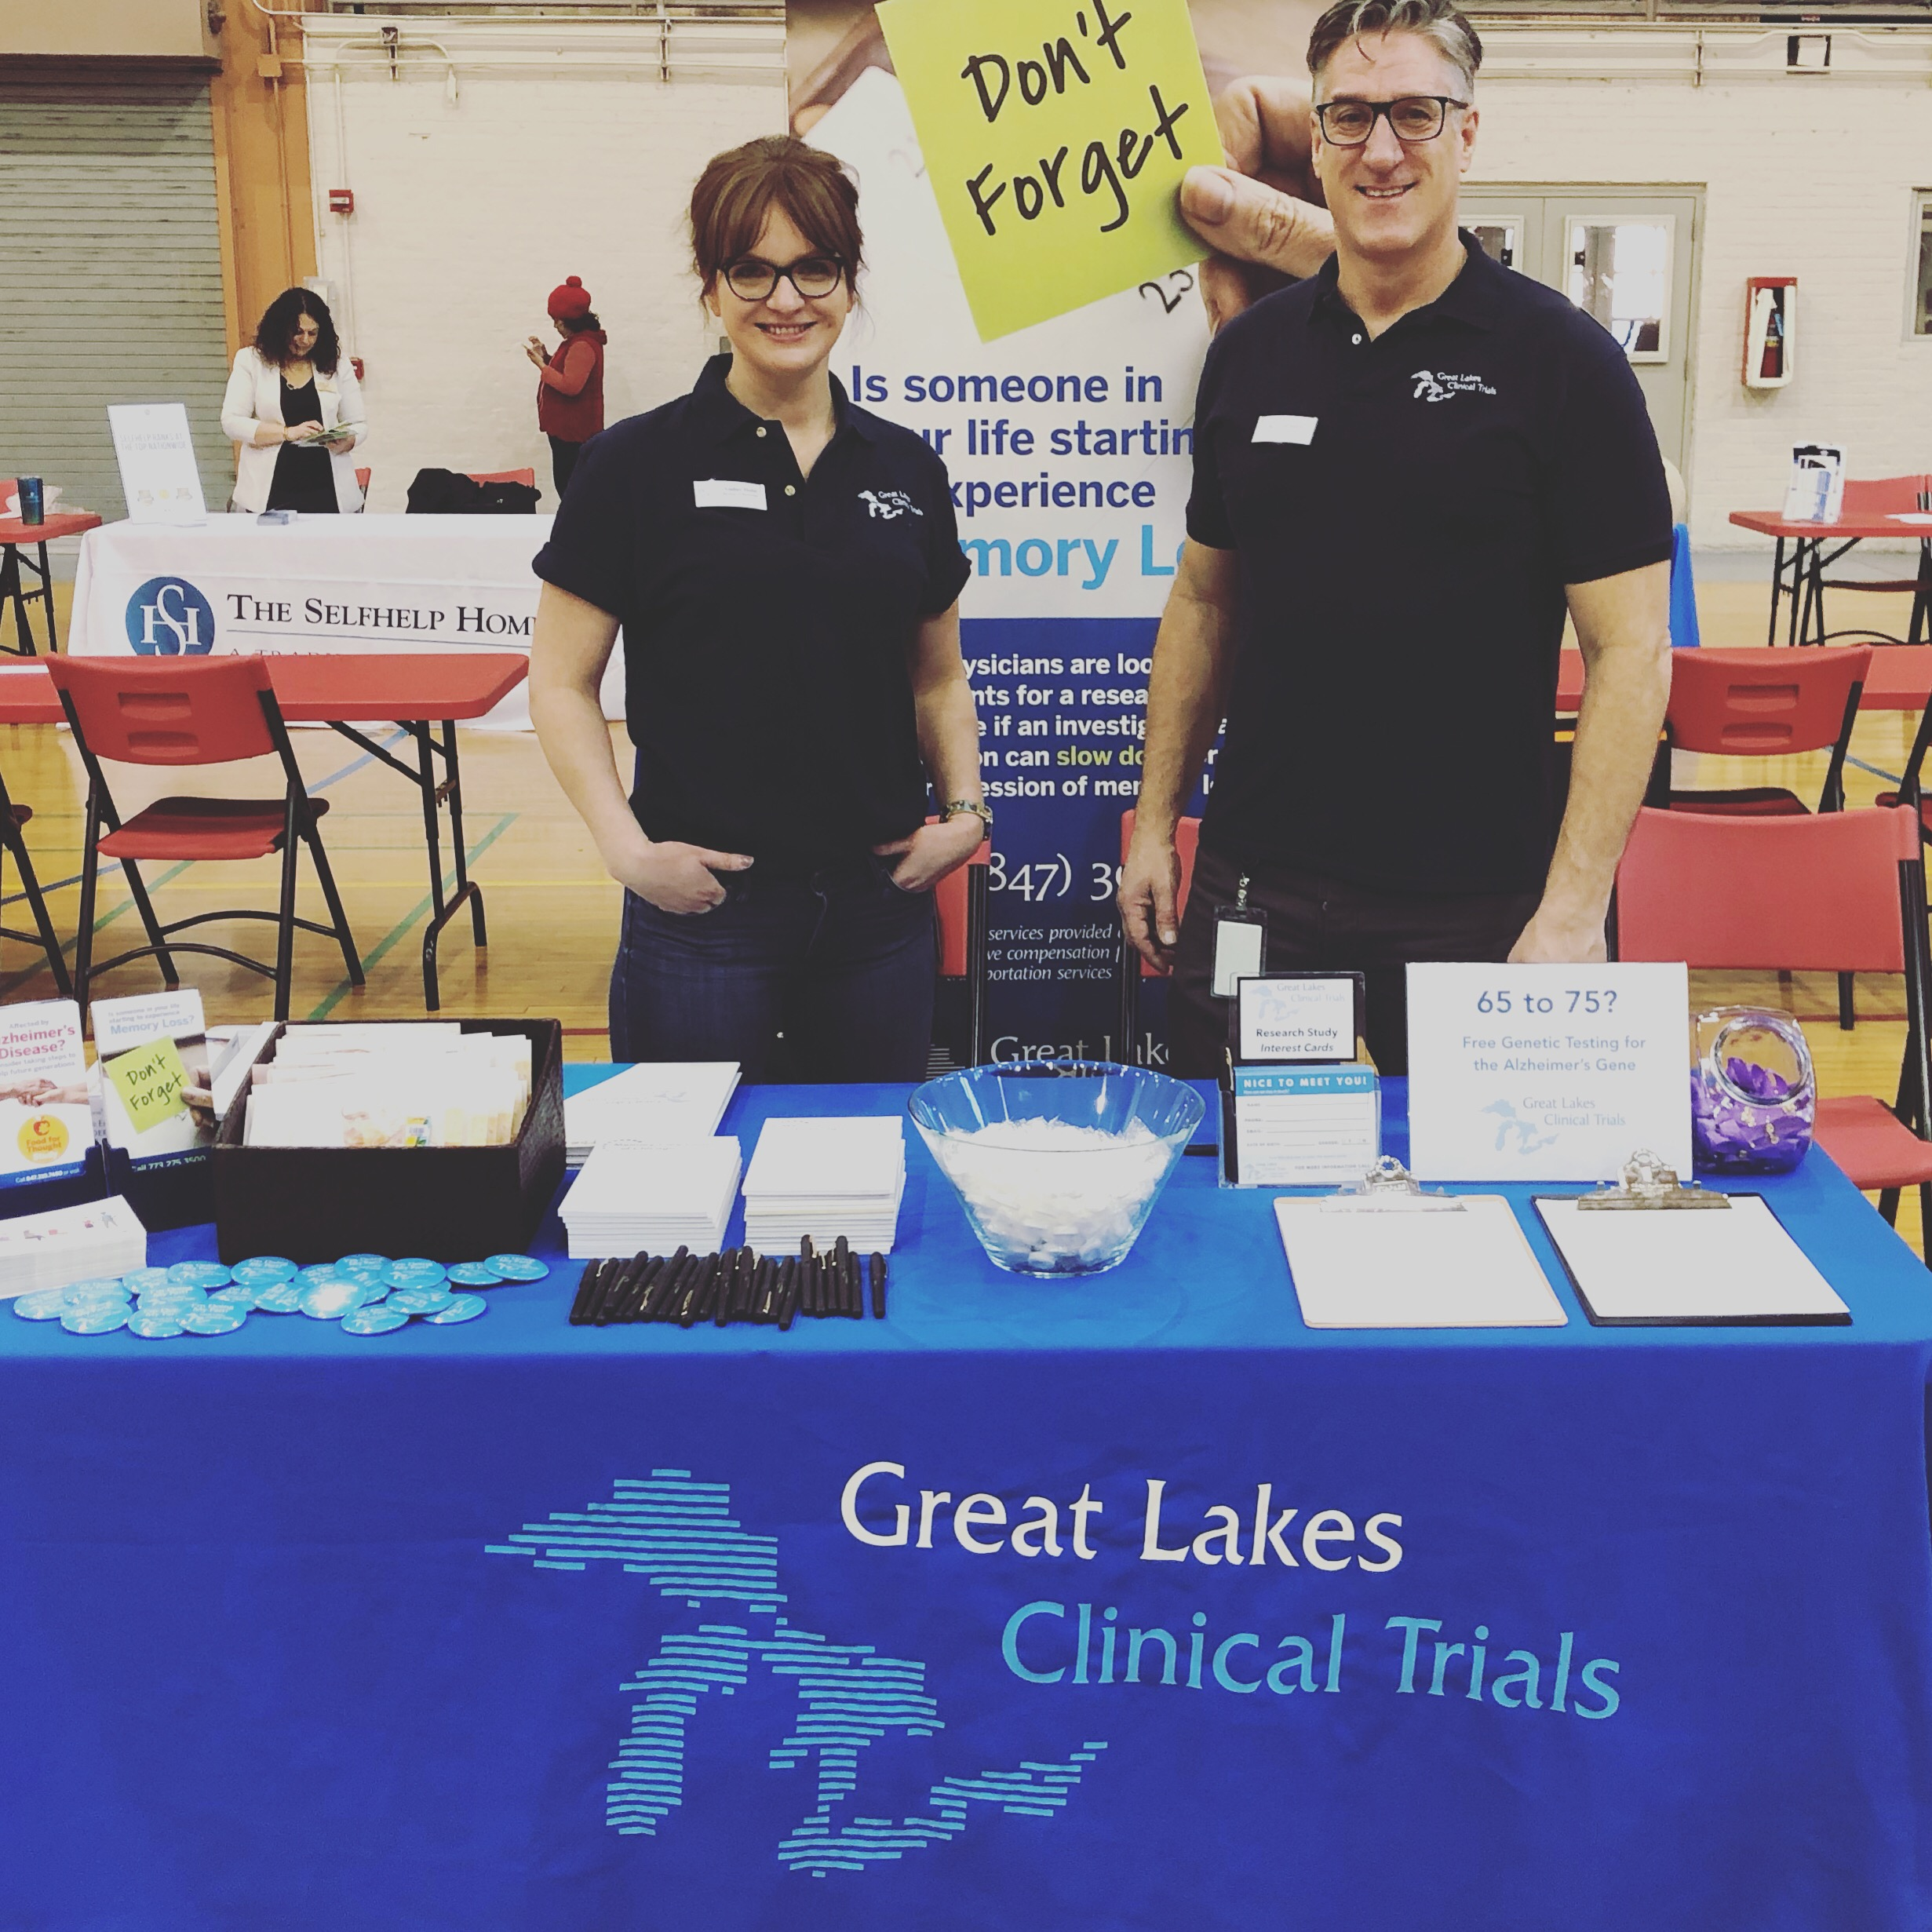 Great Lakes Clinical Trials team members Amber Holst, Director of Marketing and Steve Satek, President will attend the Swing into Spring Expo